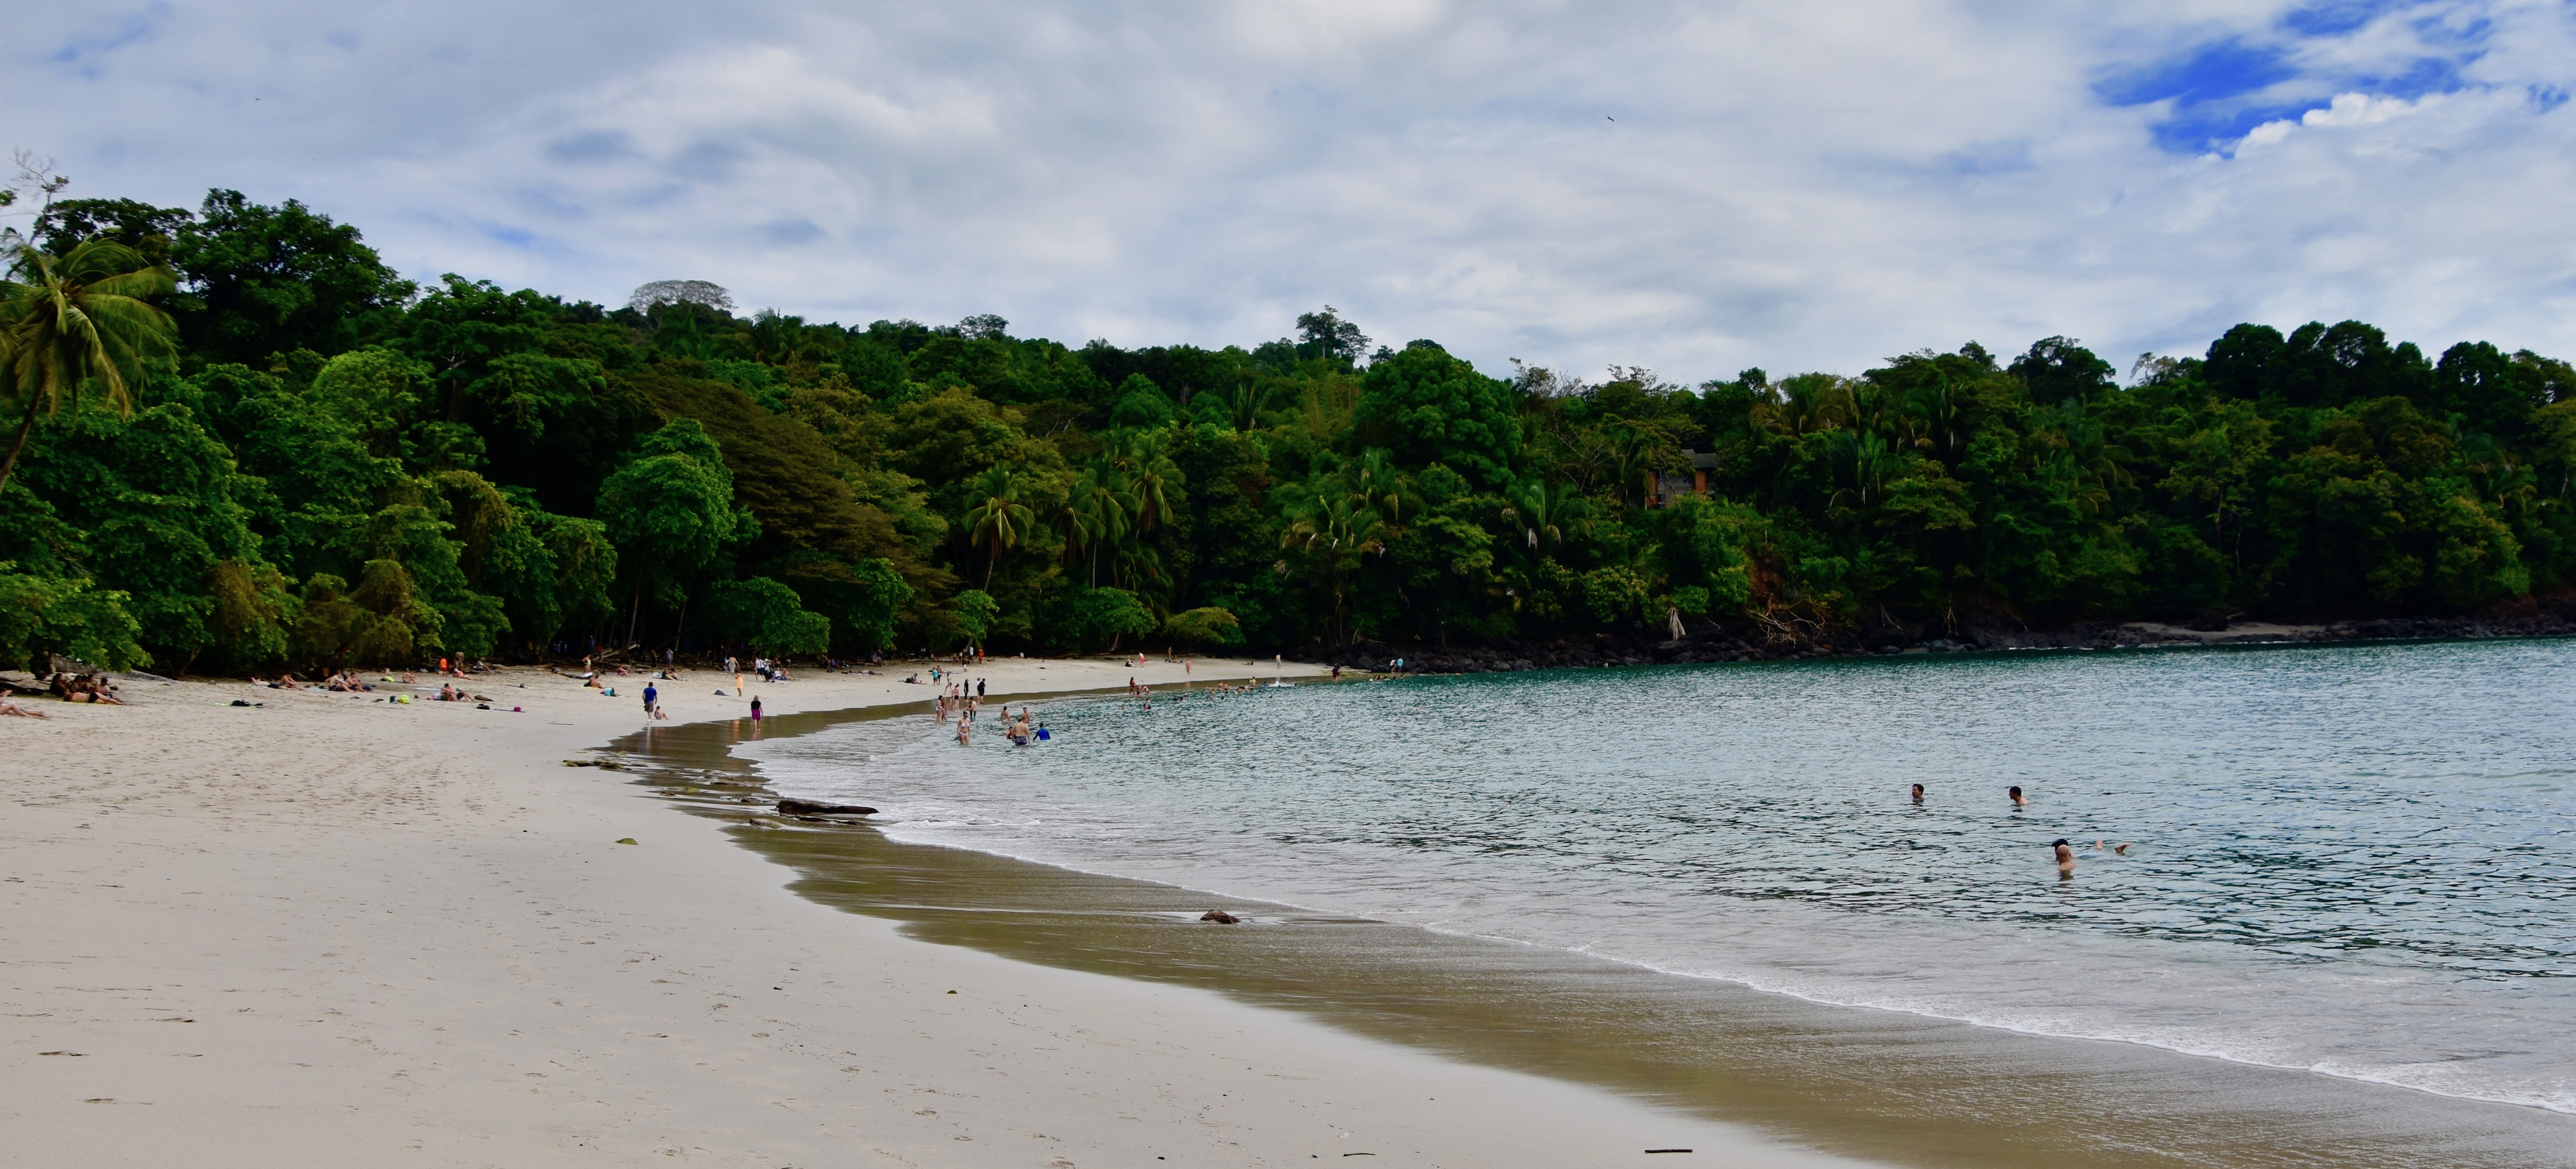 The Manuel Antonio Beach